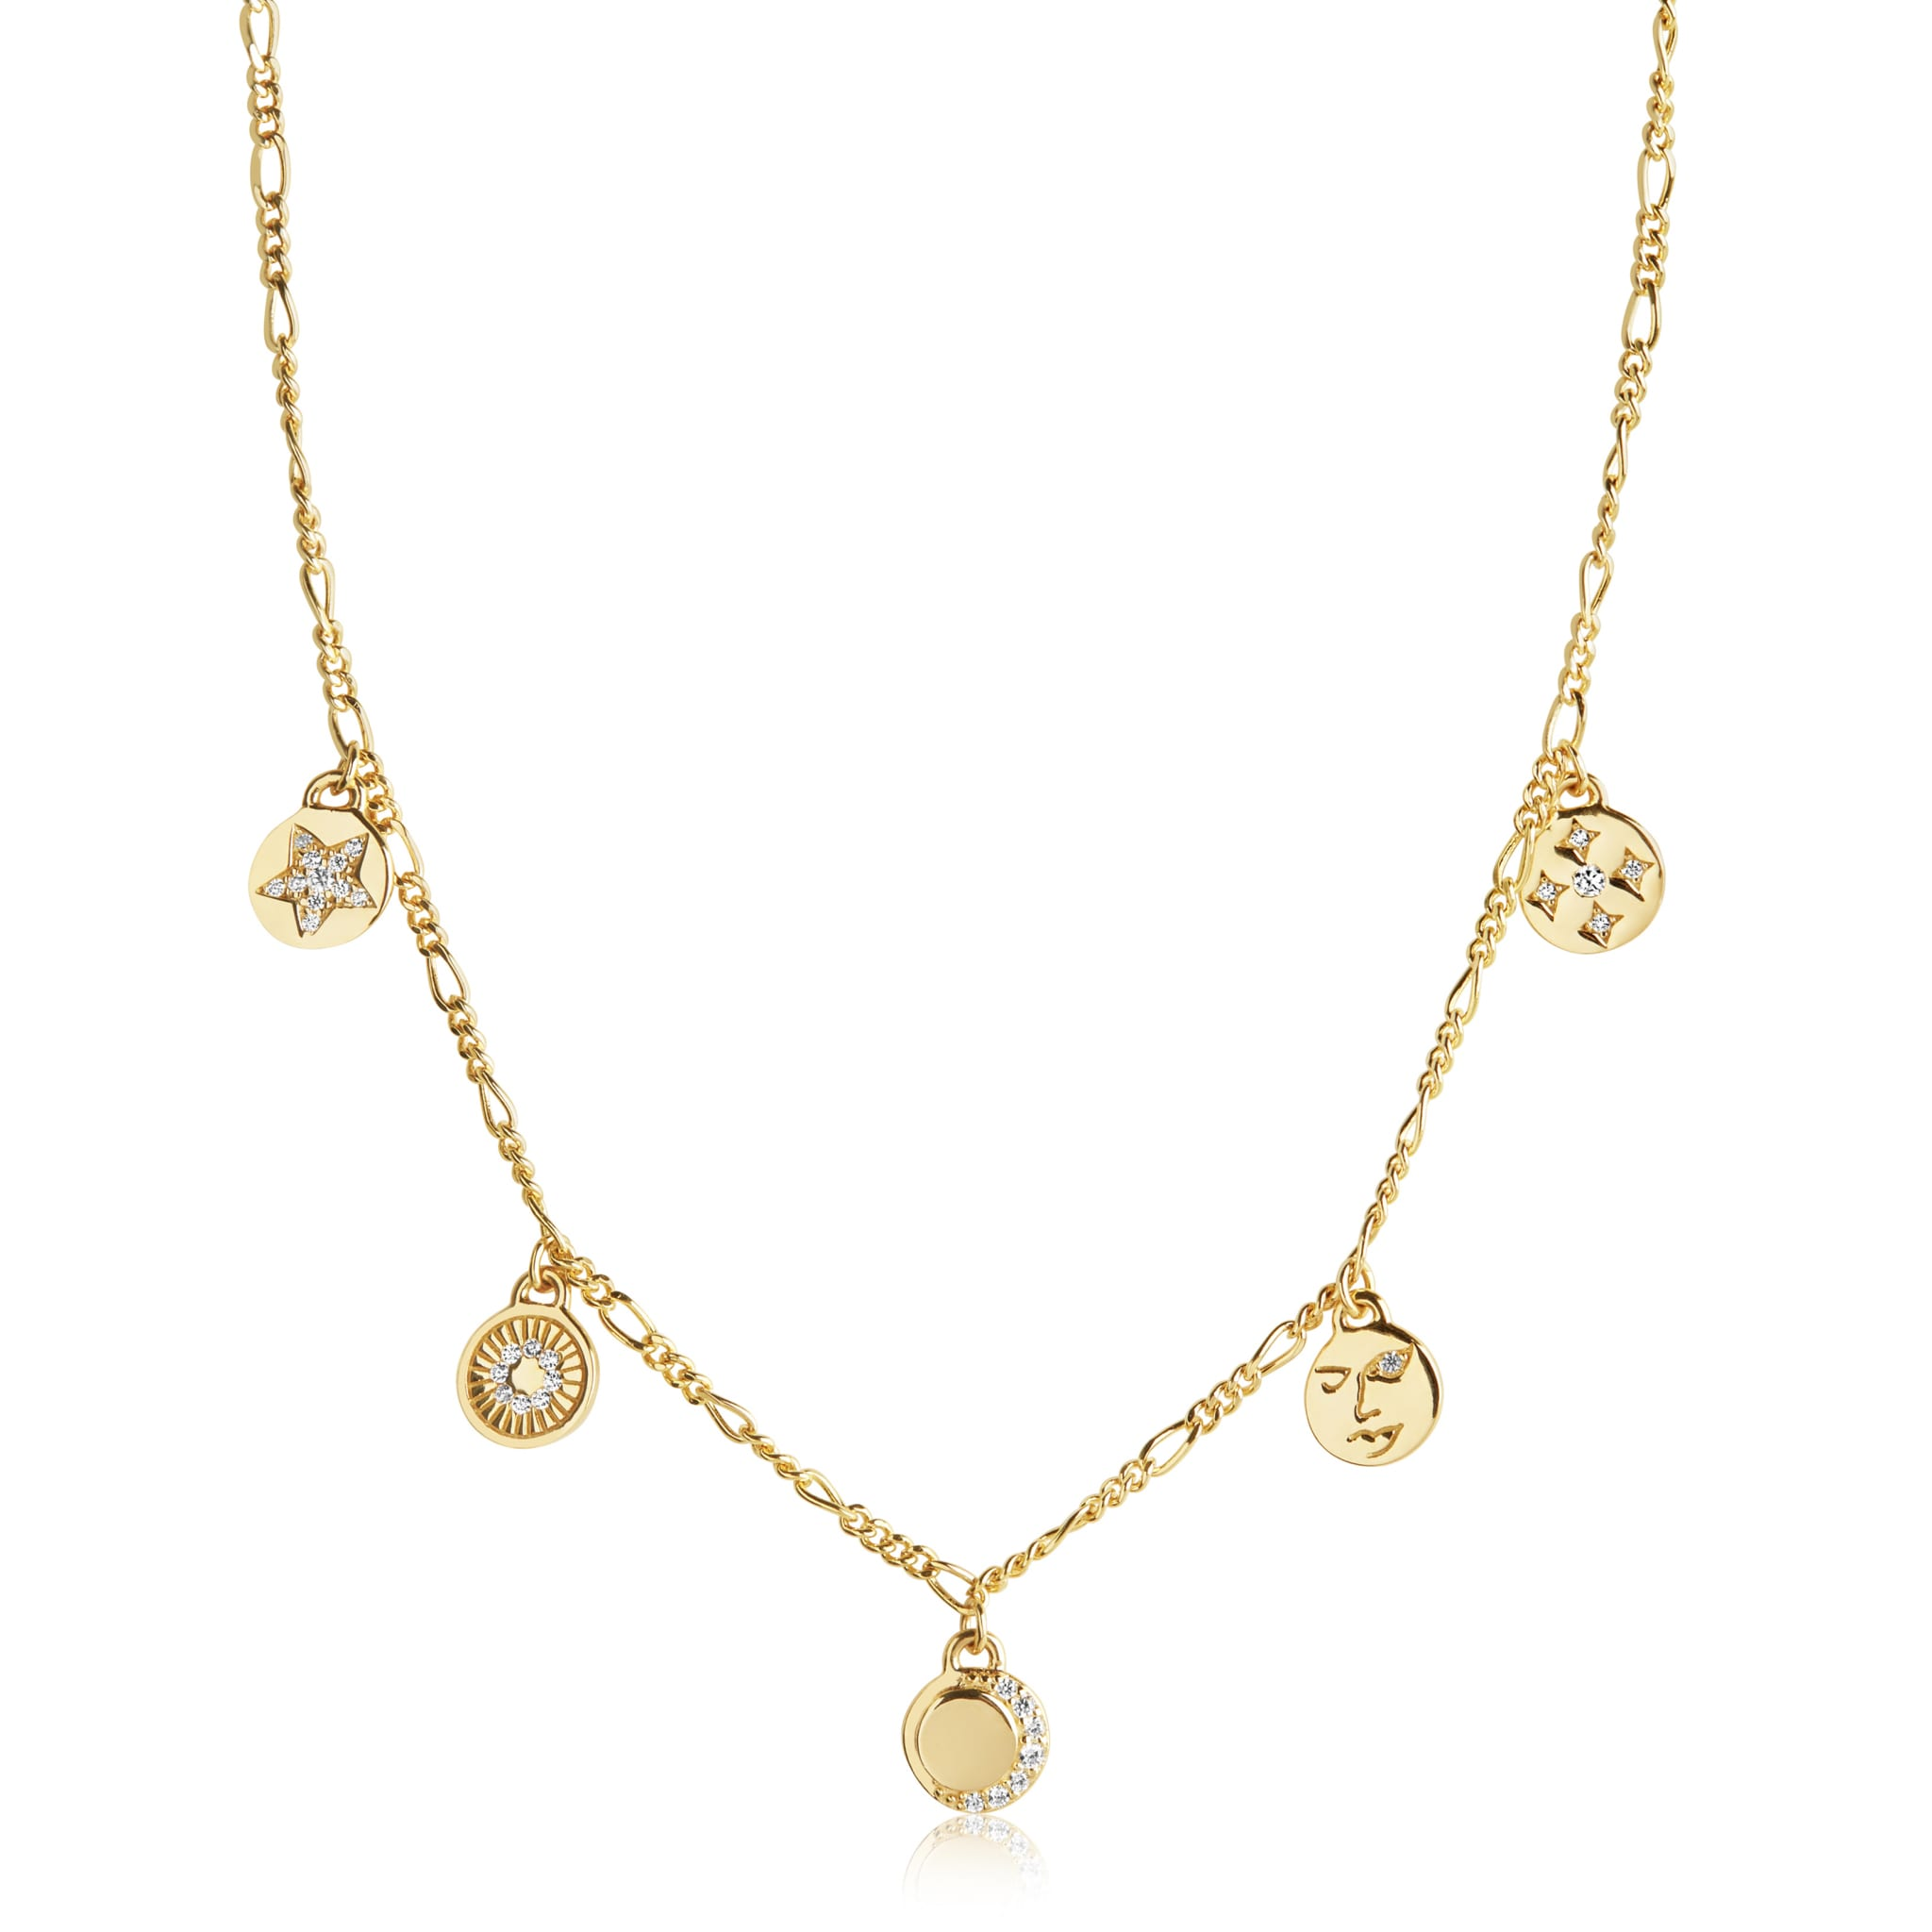 Sif Jakobs Jewellery – PORTOFINO NECKLACE-N61917-CZSG